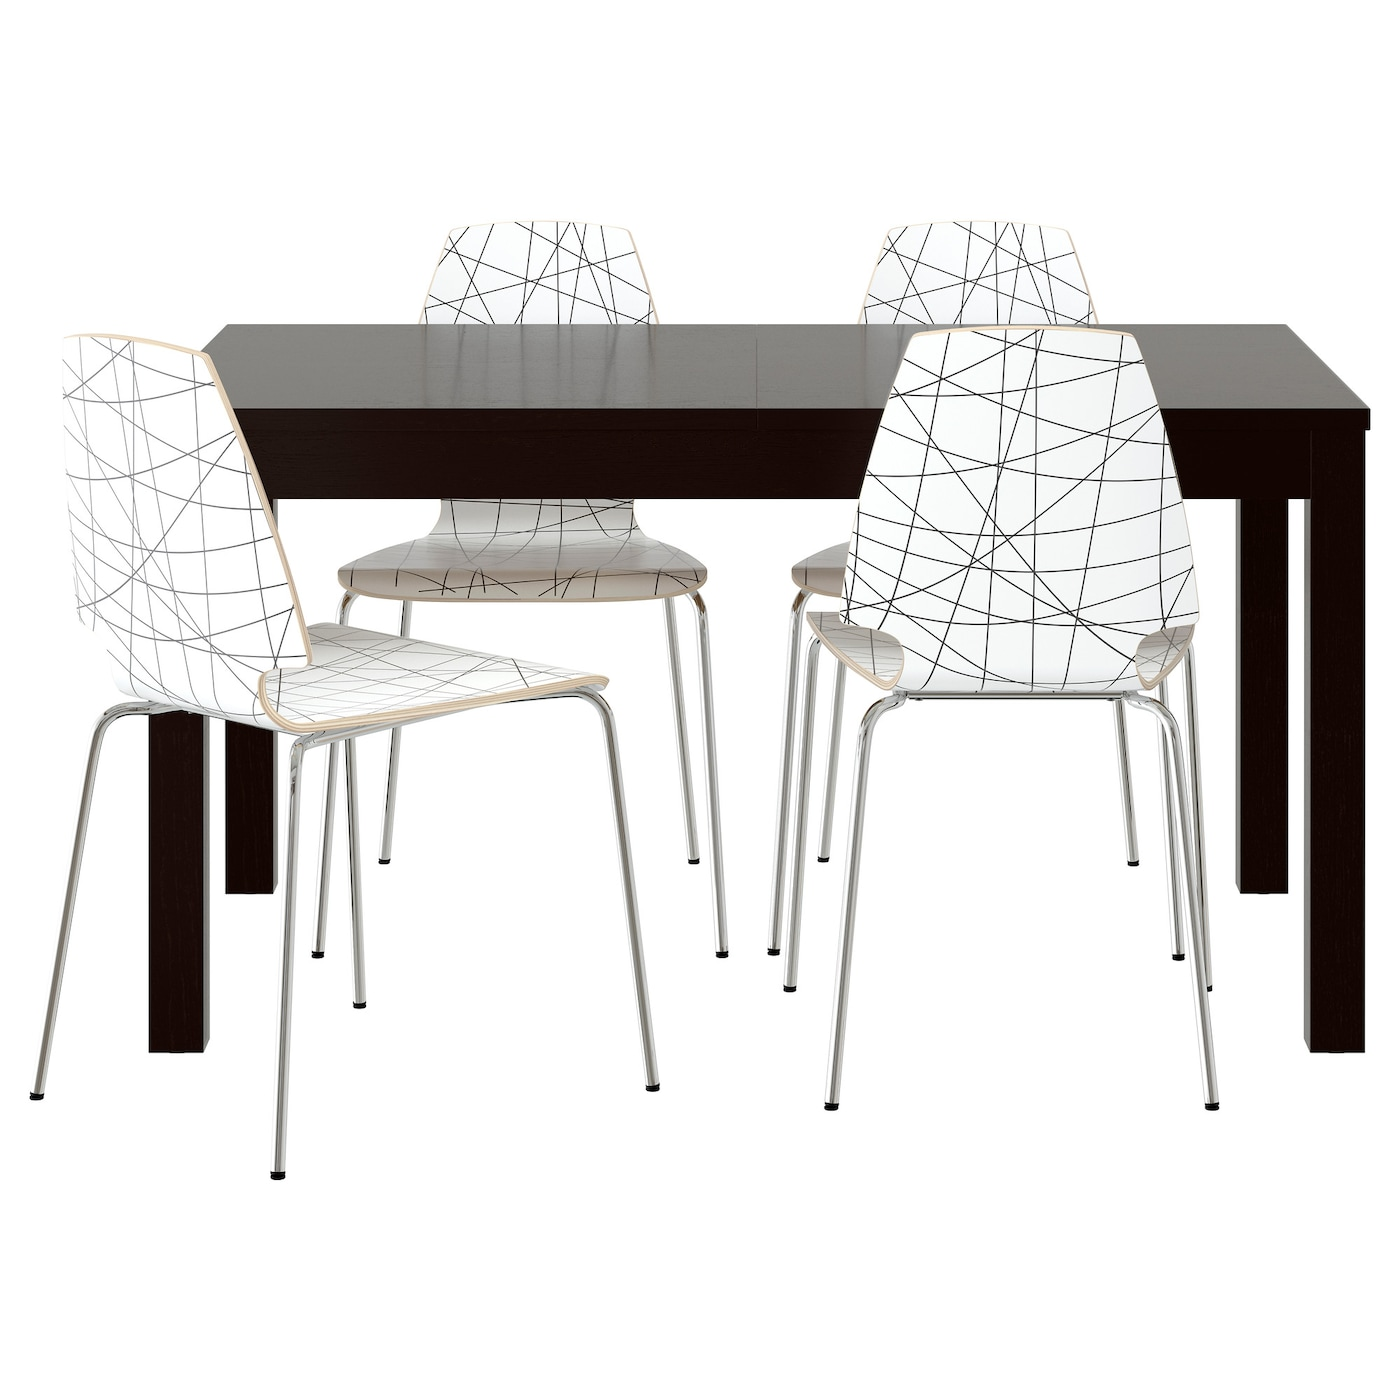 Vilmar bjursta table and 4 chairs brown black striped for Ikea dining table and chairs set